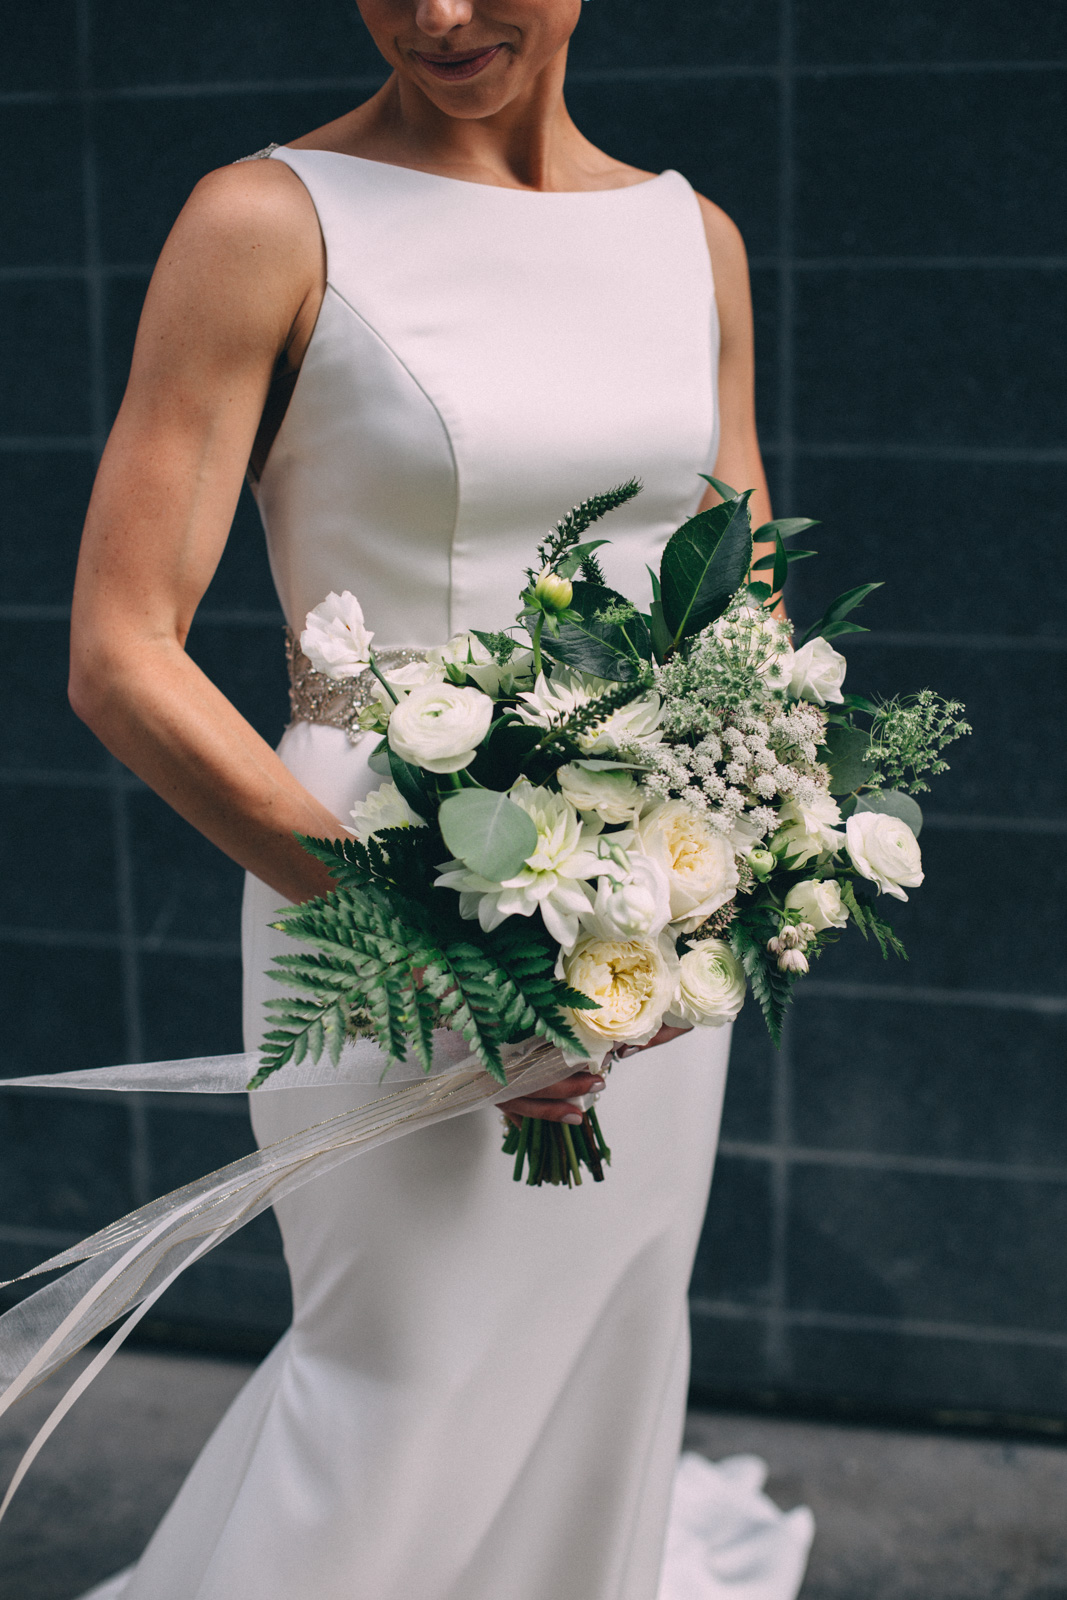 Malaparte-wedding-photography-Toronto-by-Sam-Wong-of-Visual-Cravings_37